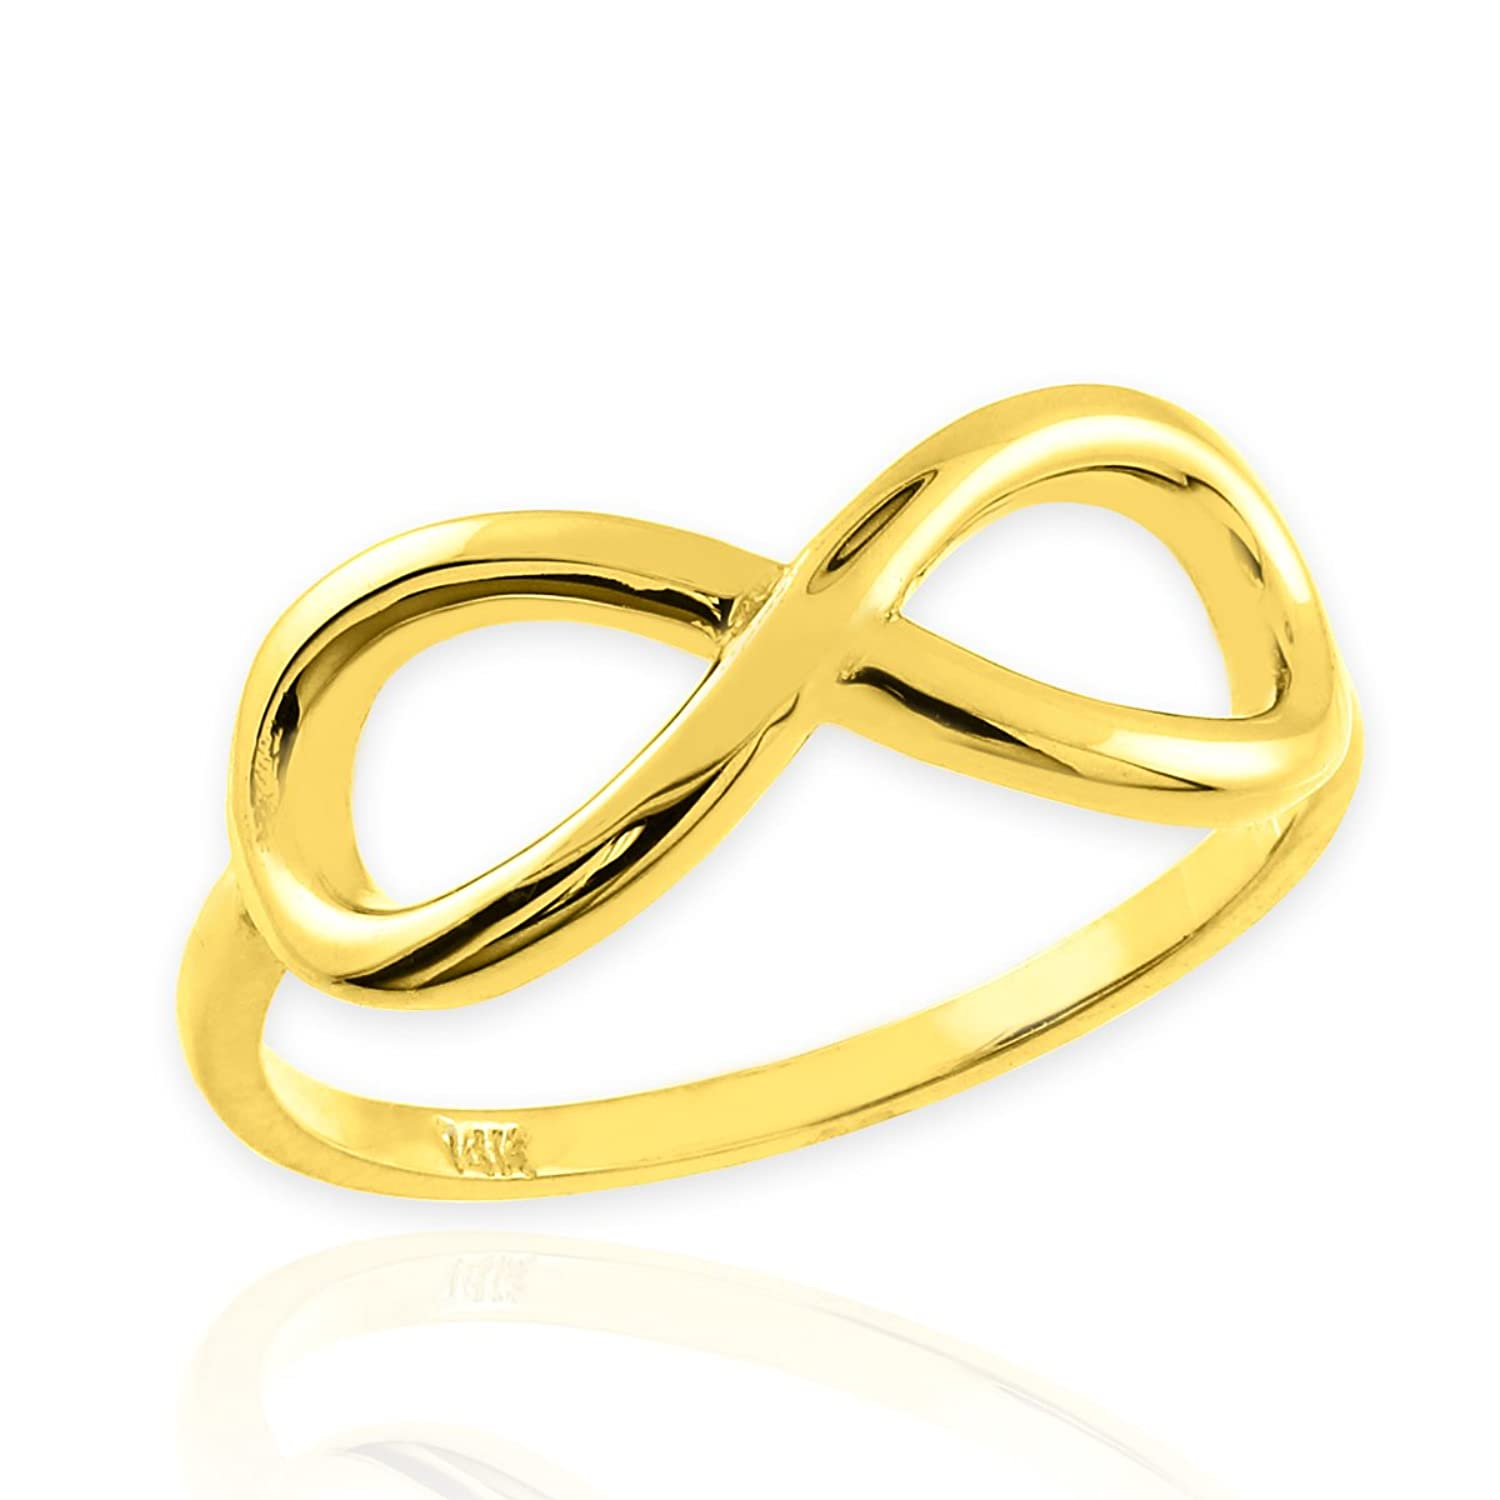 jewellery bands infinity men beers court yellow rings gold s category wide wedding de band rose mens